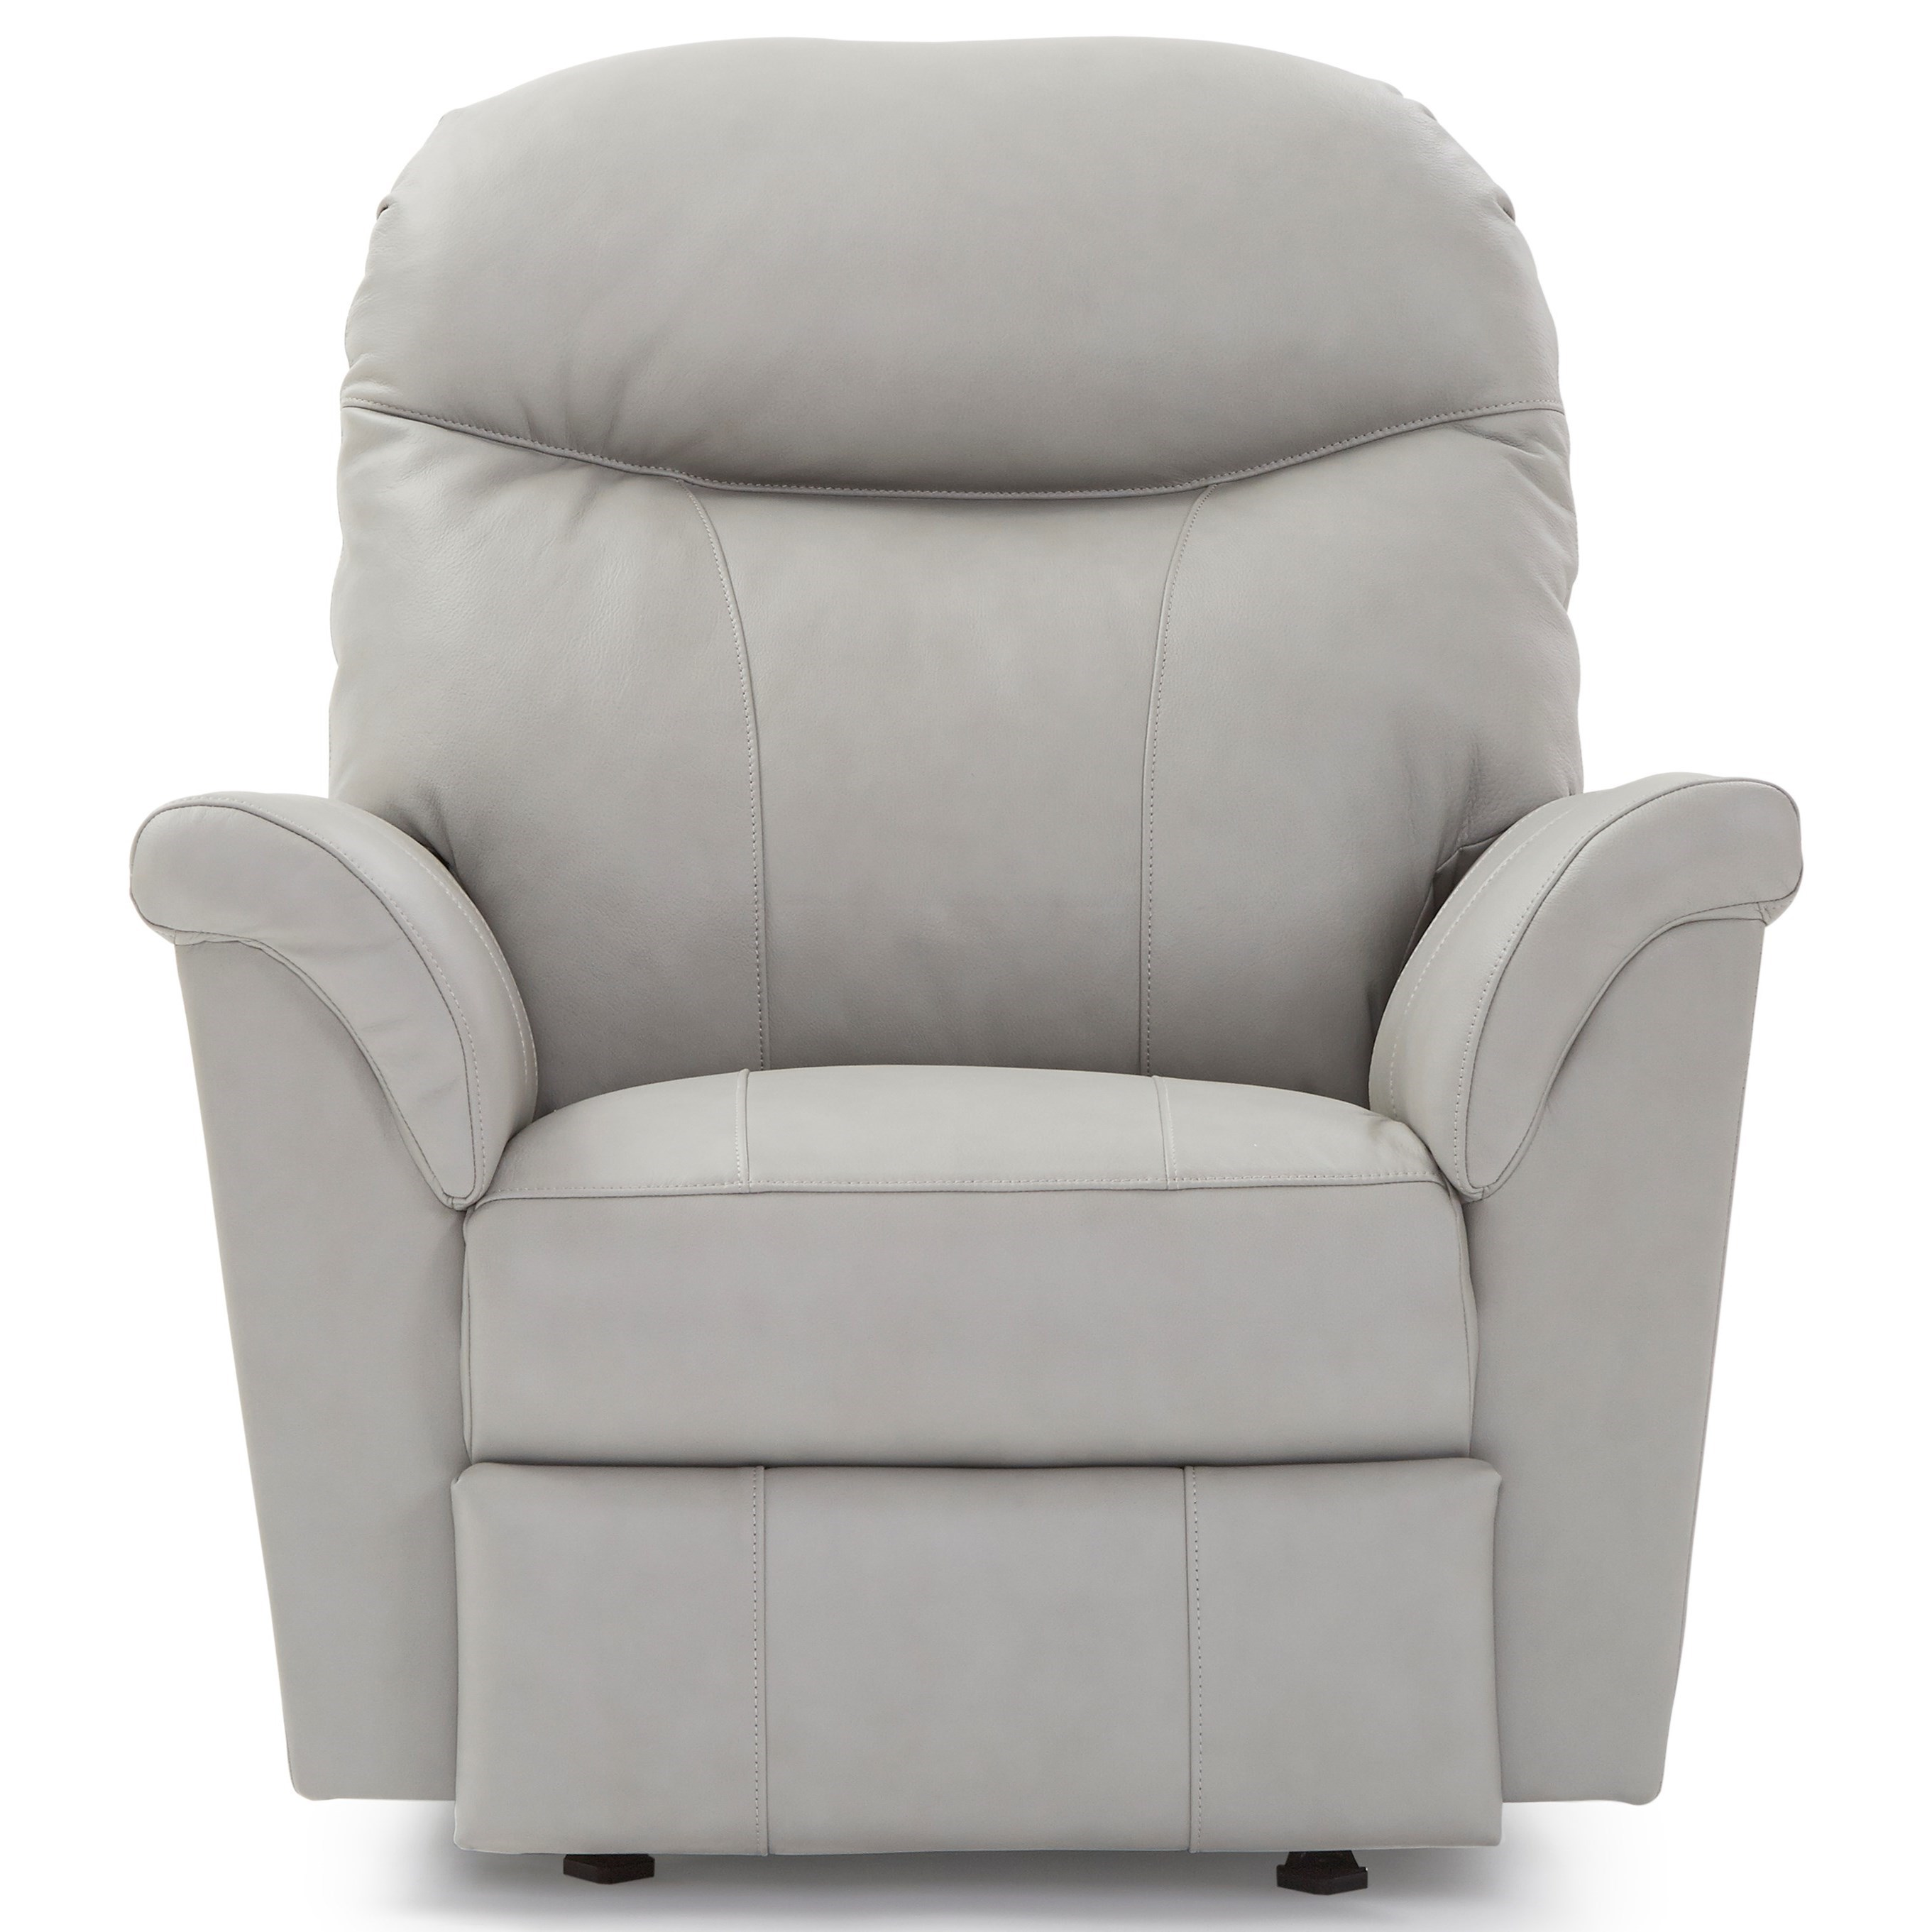 Caitlin Space Saver Recliner by Best Home Furnishings at Best Home Furnishings